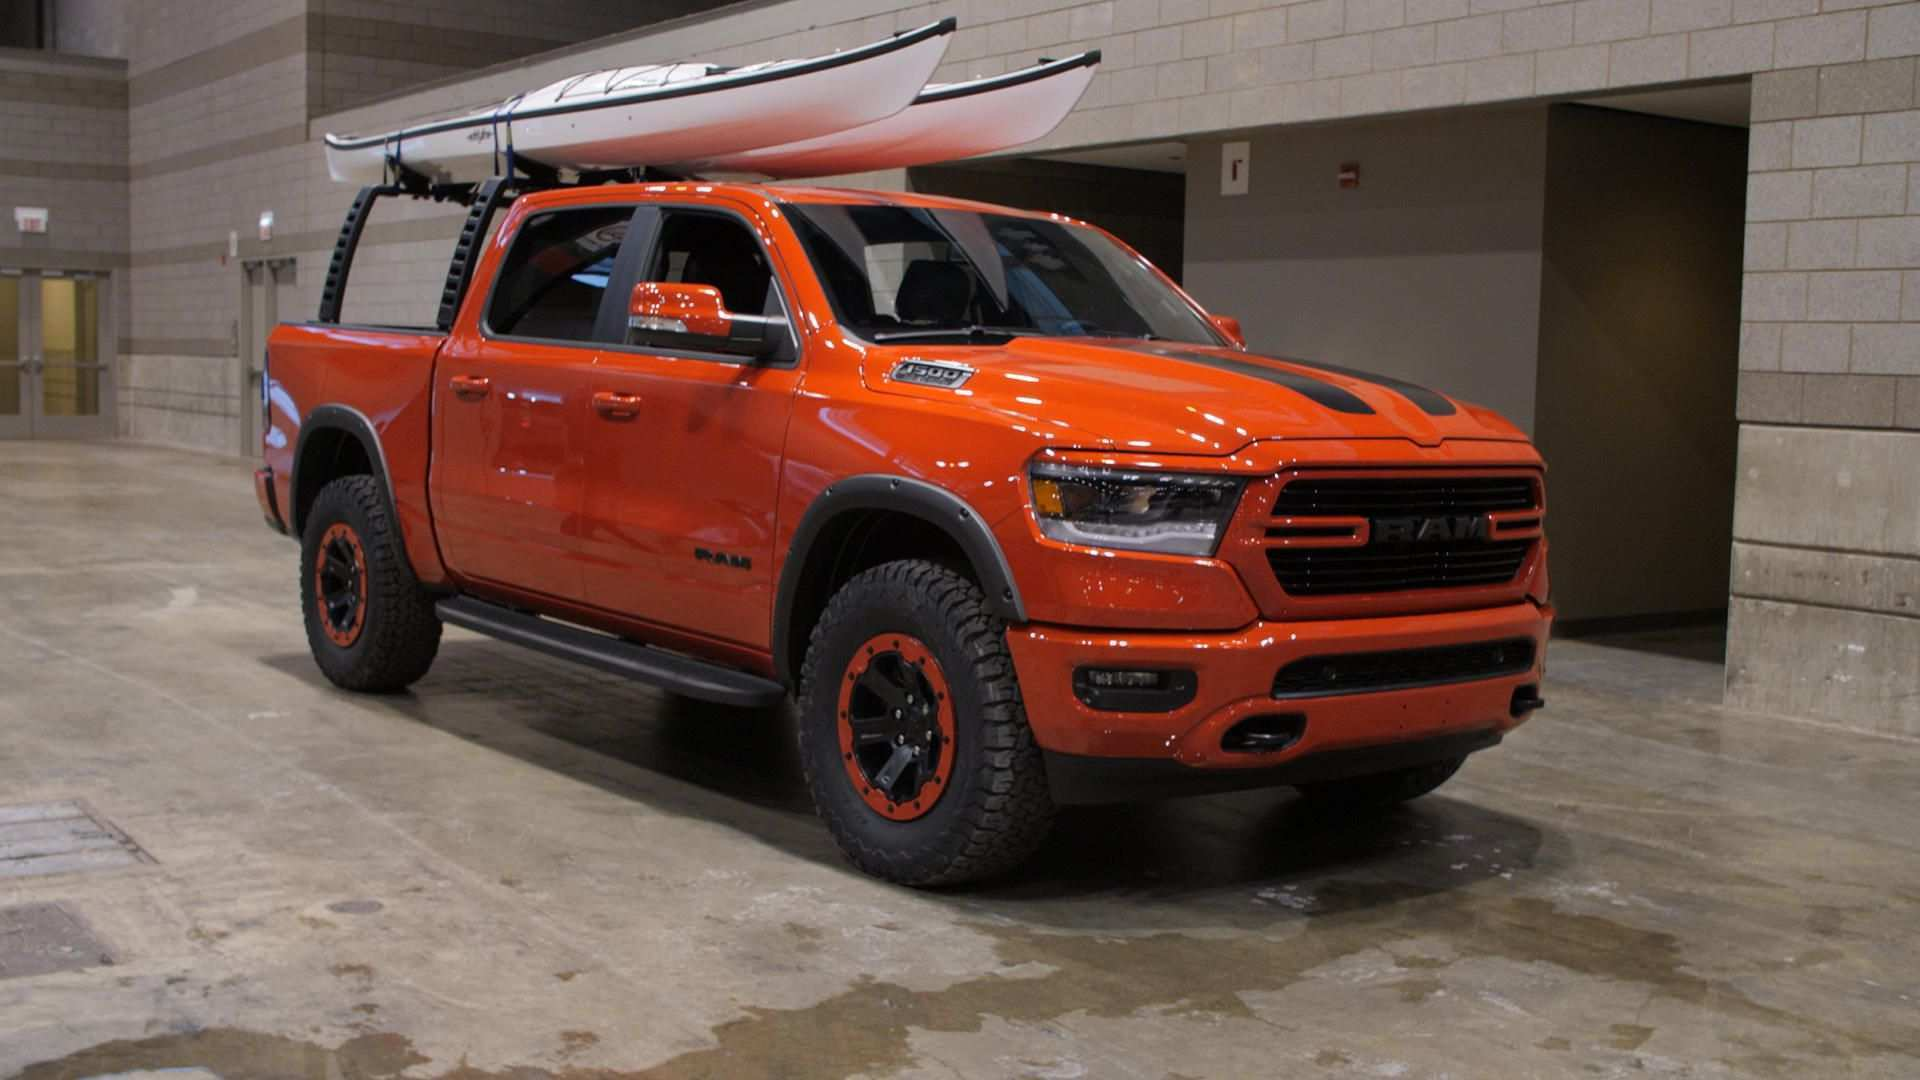 36 Great 2019 Dodge Ram Prototype Ratings by 2019 Dodge Ram Prototype